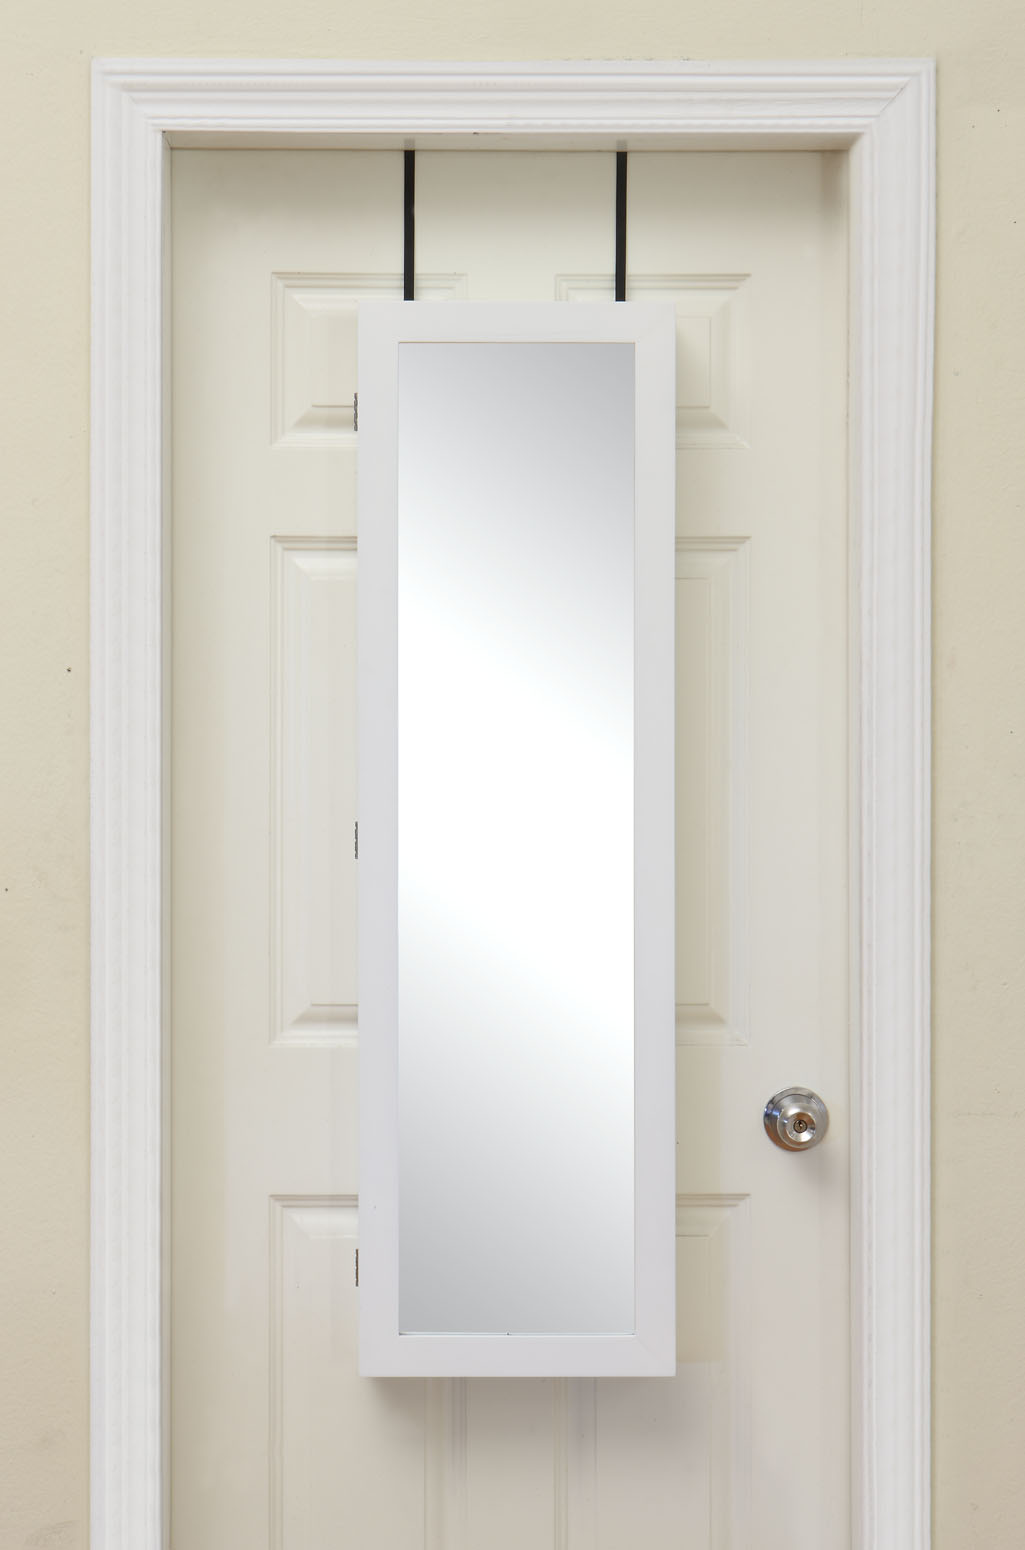 Bring Home Functional Style with an Over-the-Door Mirror